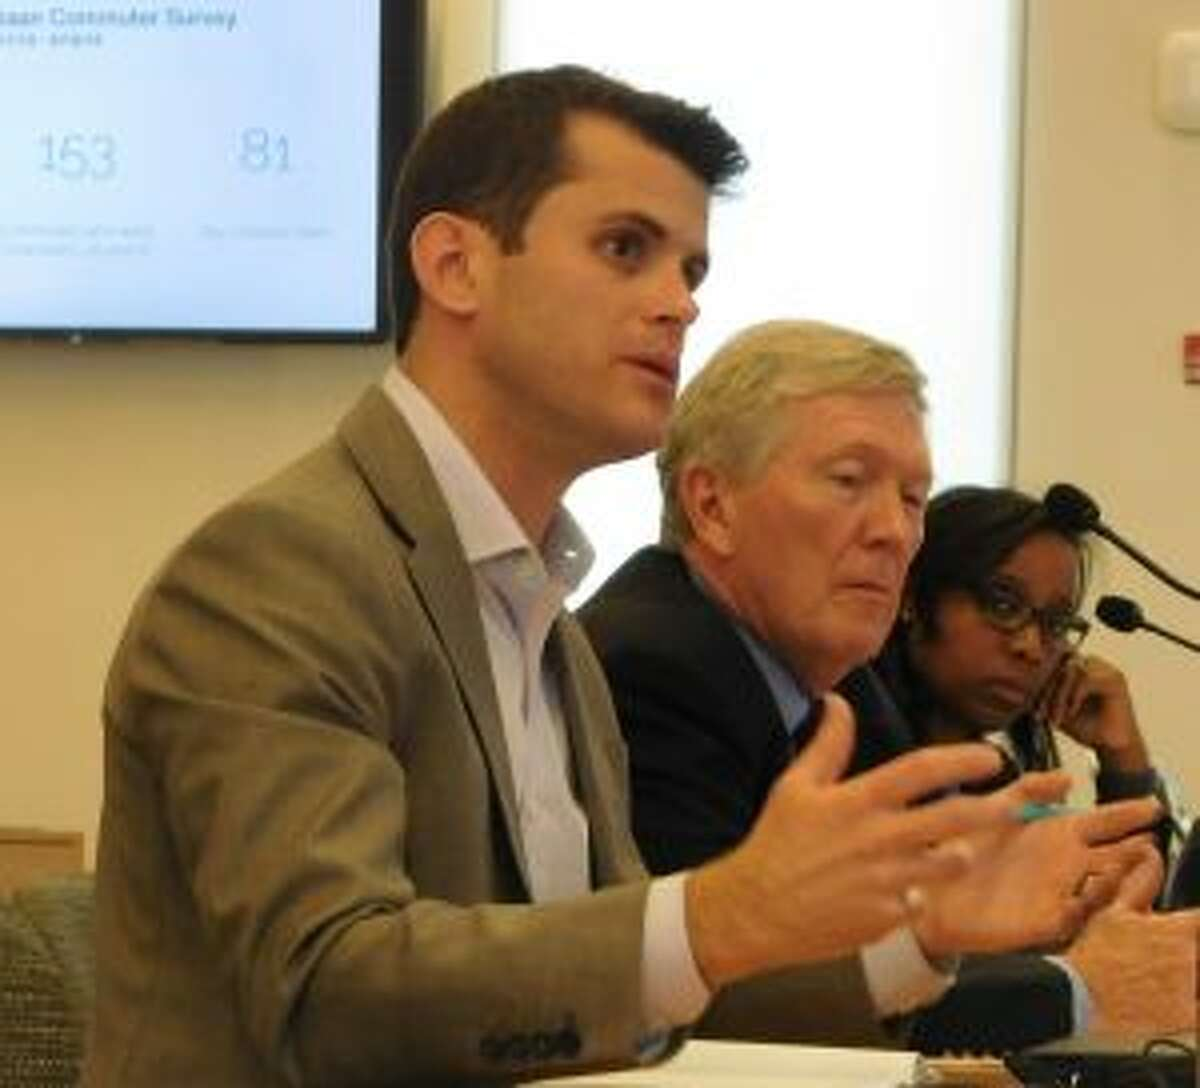 New Canaan: A program for commuter parking on private property is going to be tested. Addressing the Planning and Zoning Commission on June 26 were, from left, Boxcar CEO Joe Colangelo, First Selectman Kevin Moynihan and Interim Town Planner Keisha Fink. - Brad Durrell photo